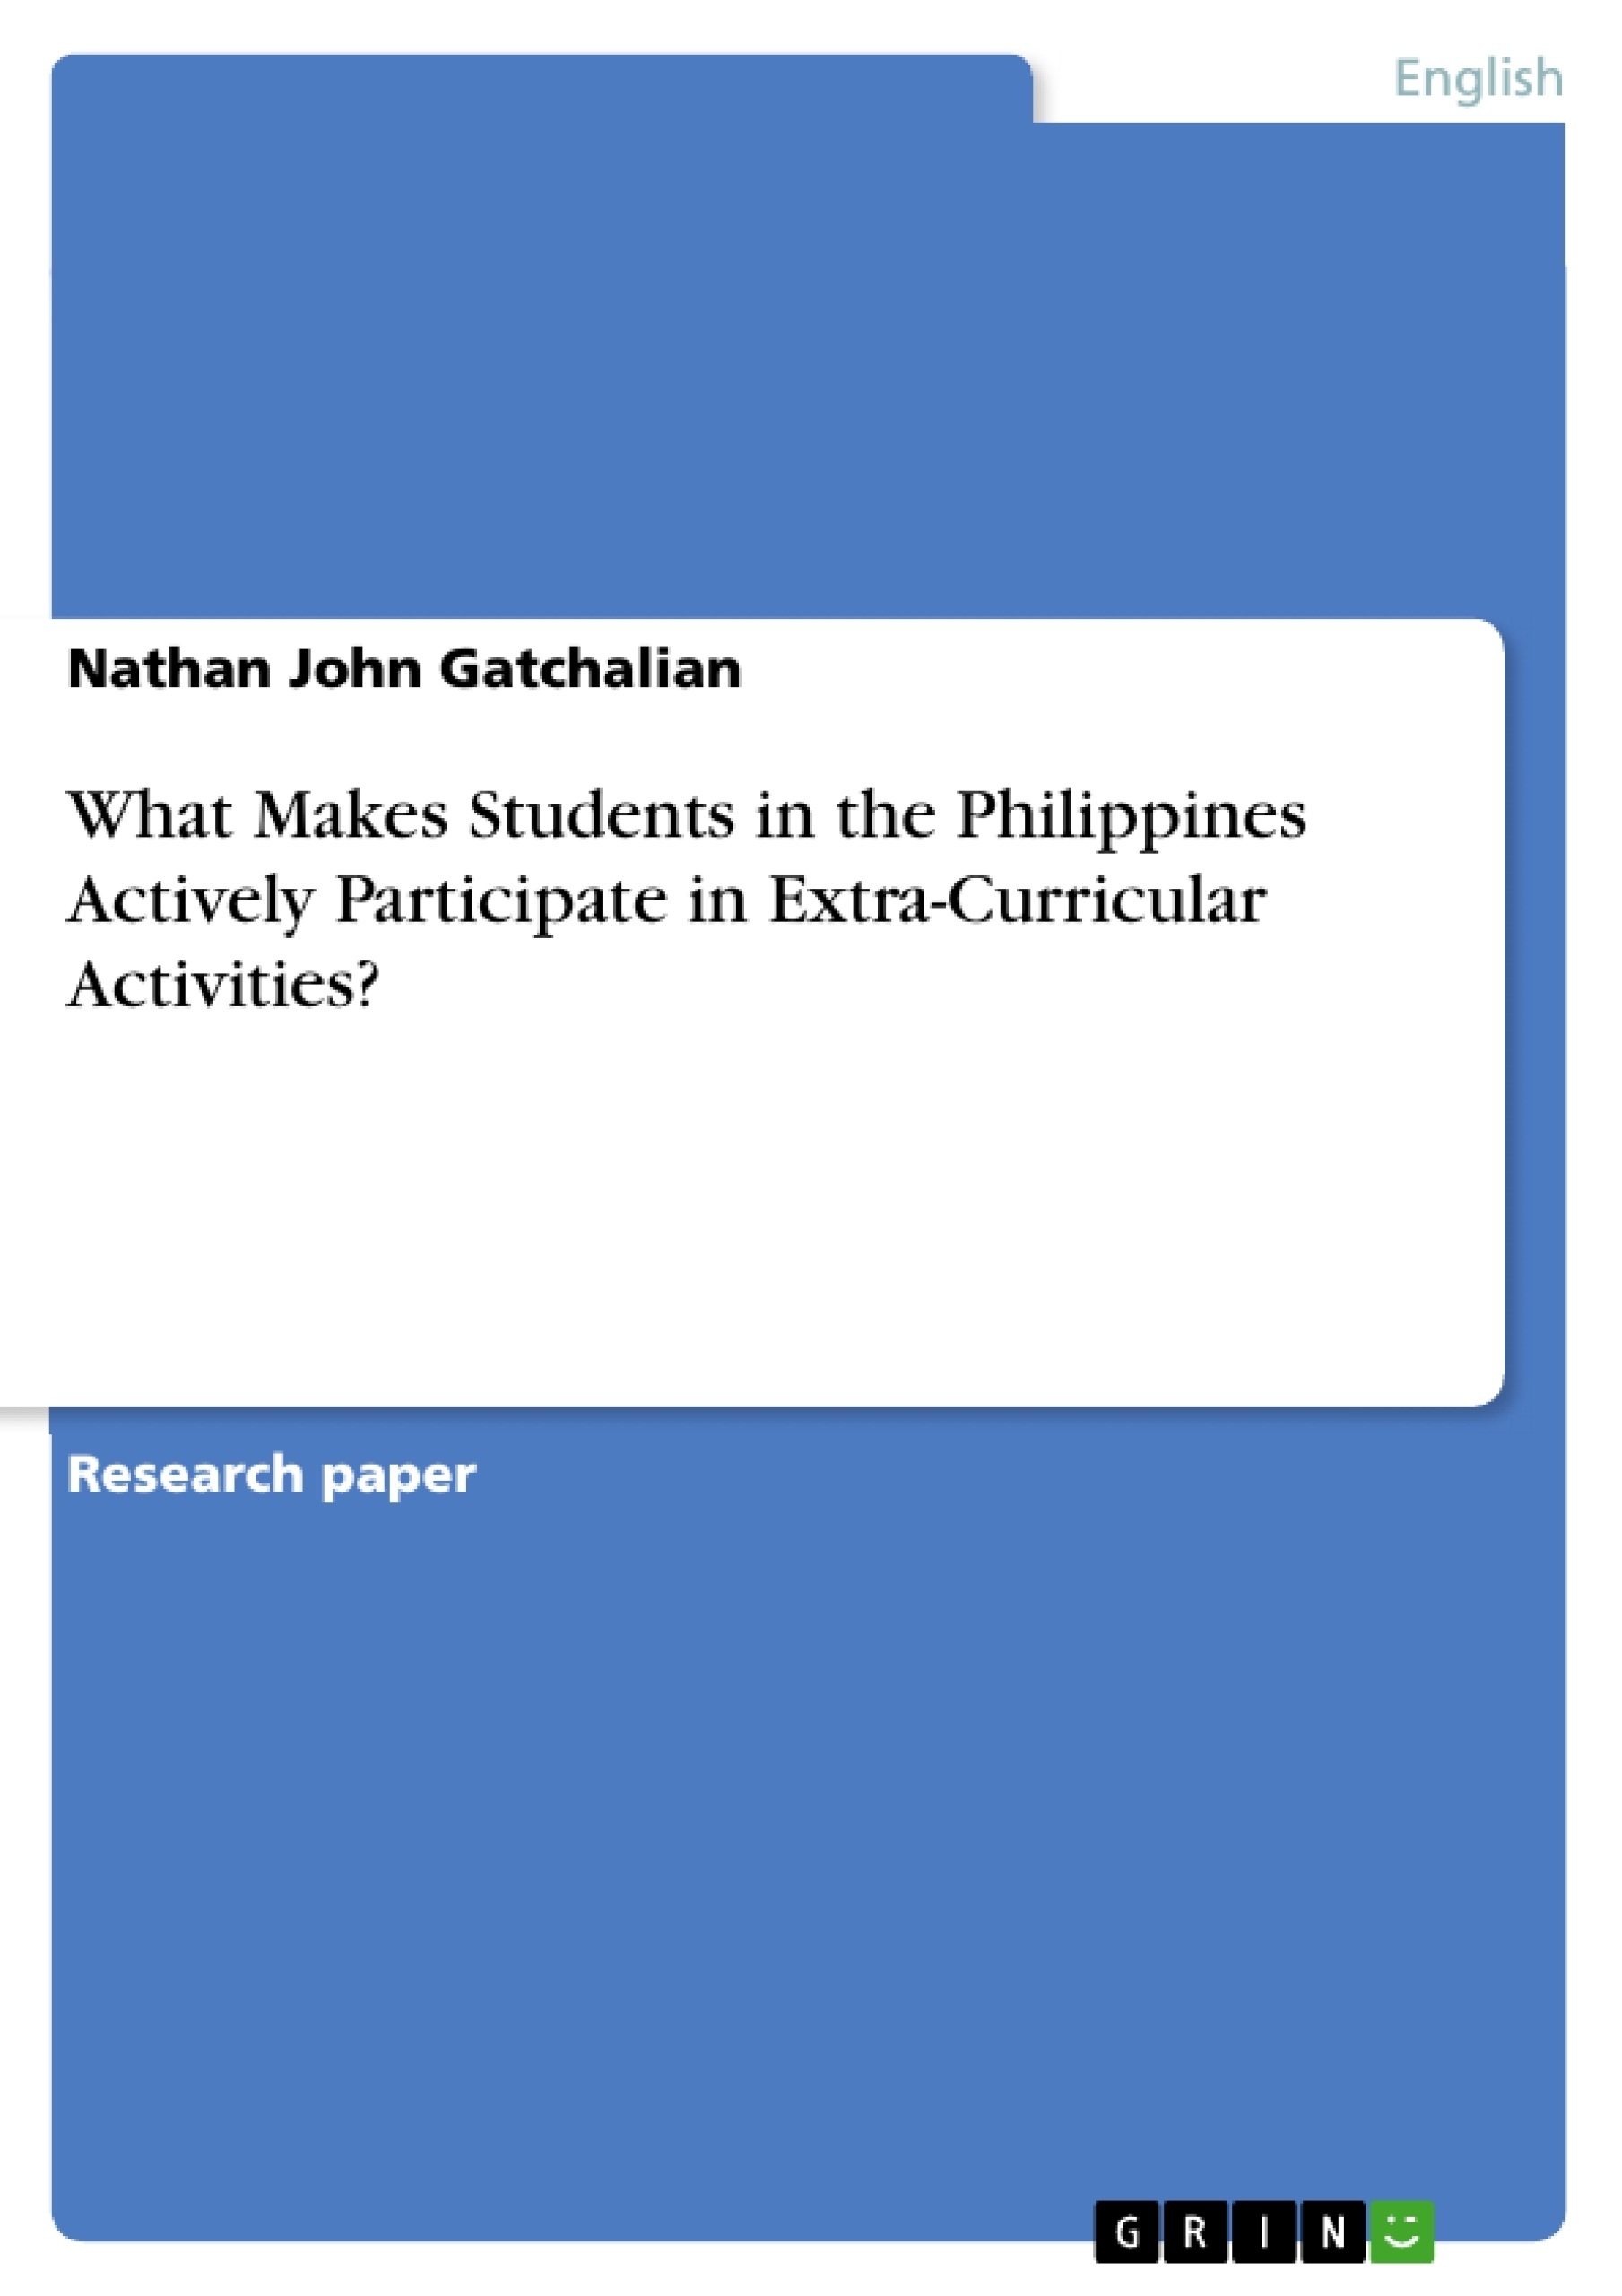 What Makes Students In The Philippines Actively Participate In